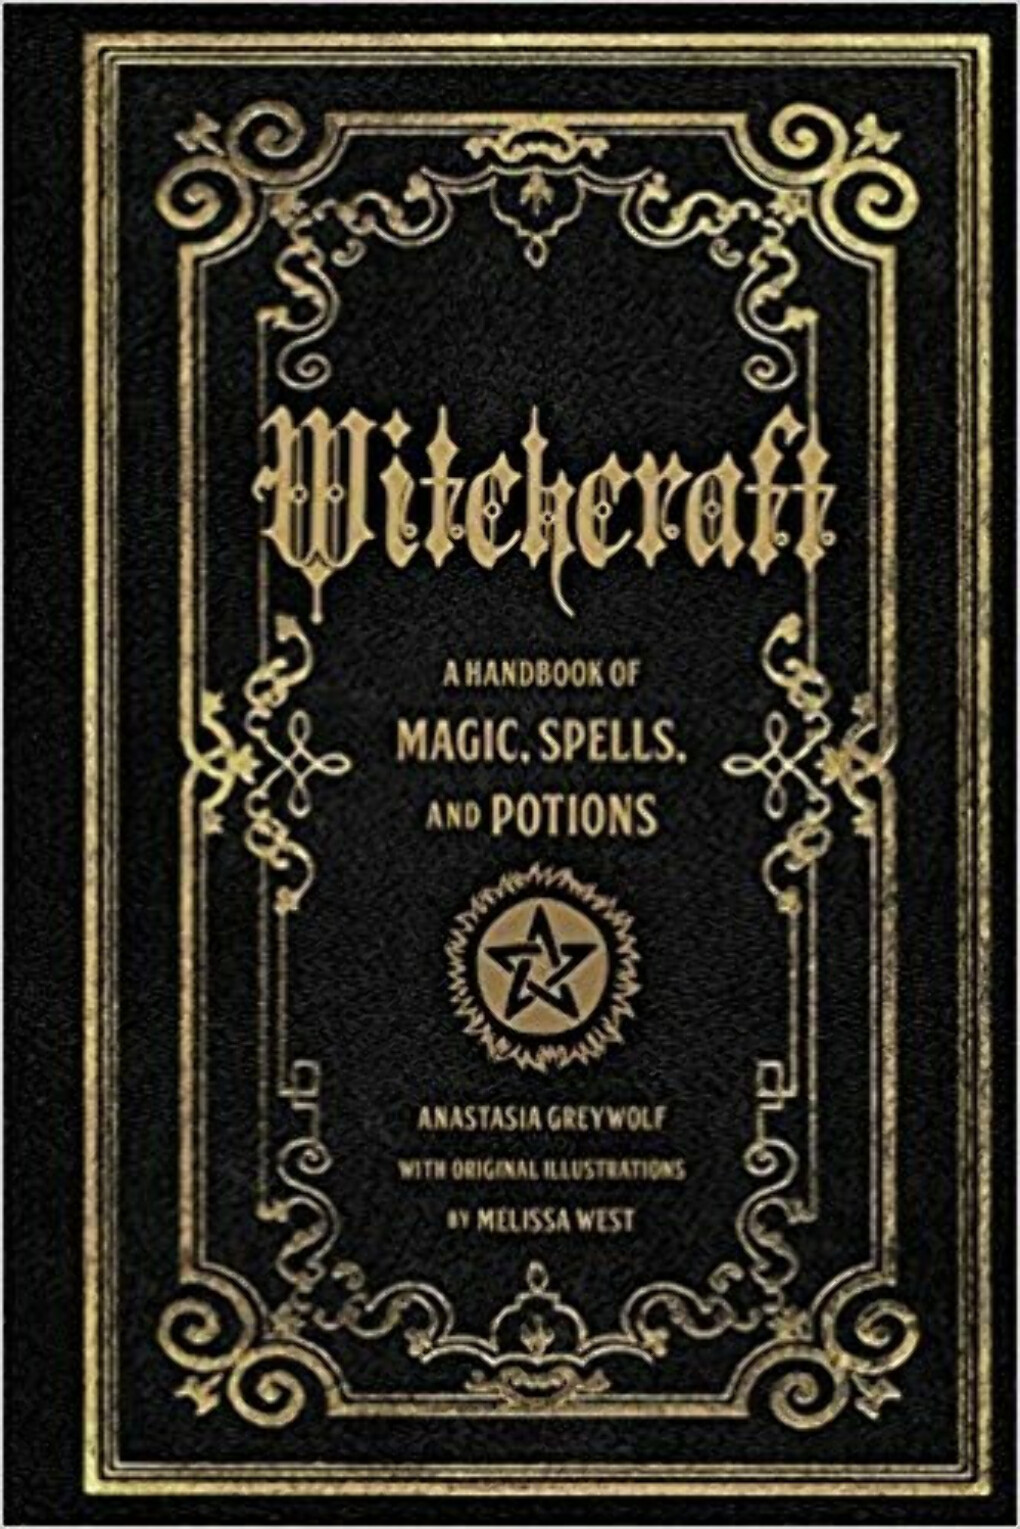 Witchcraft: A Handbook of Magic Spells and Potions                    Hardcover                                                                                                                                                        – May 15, 2016